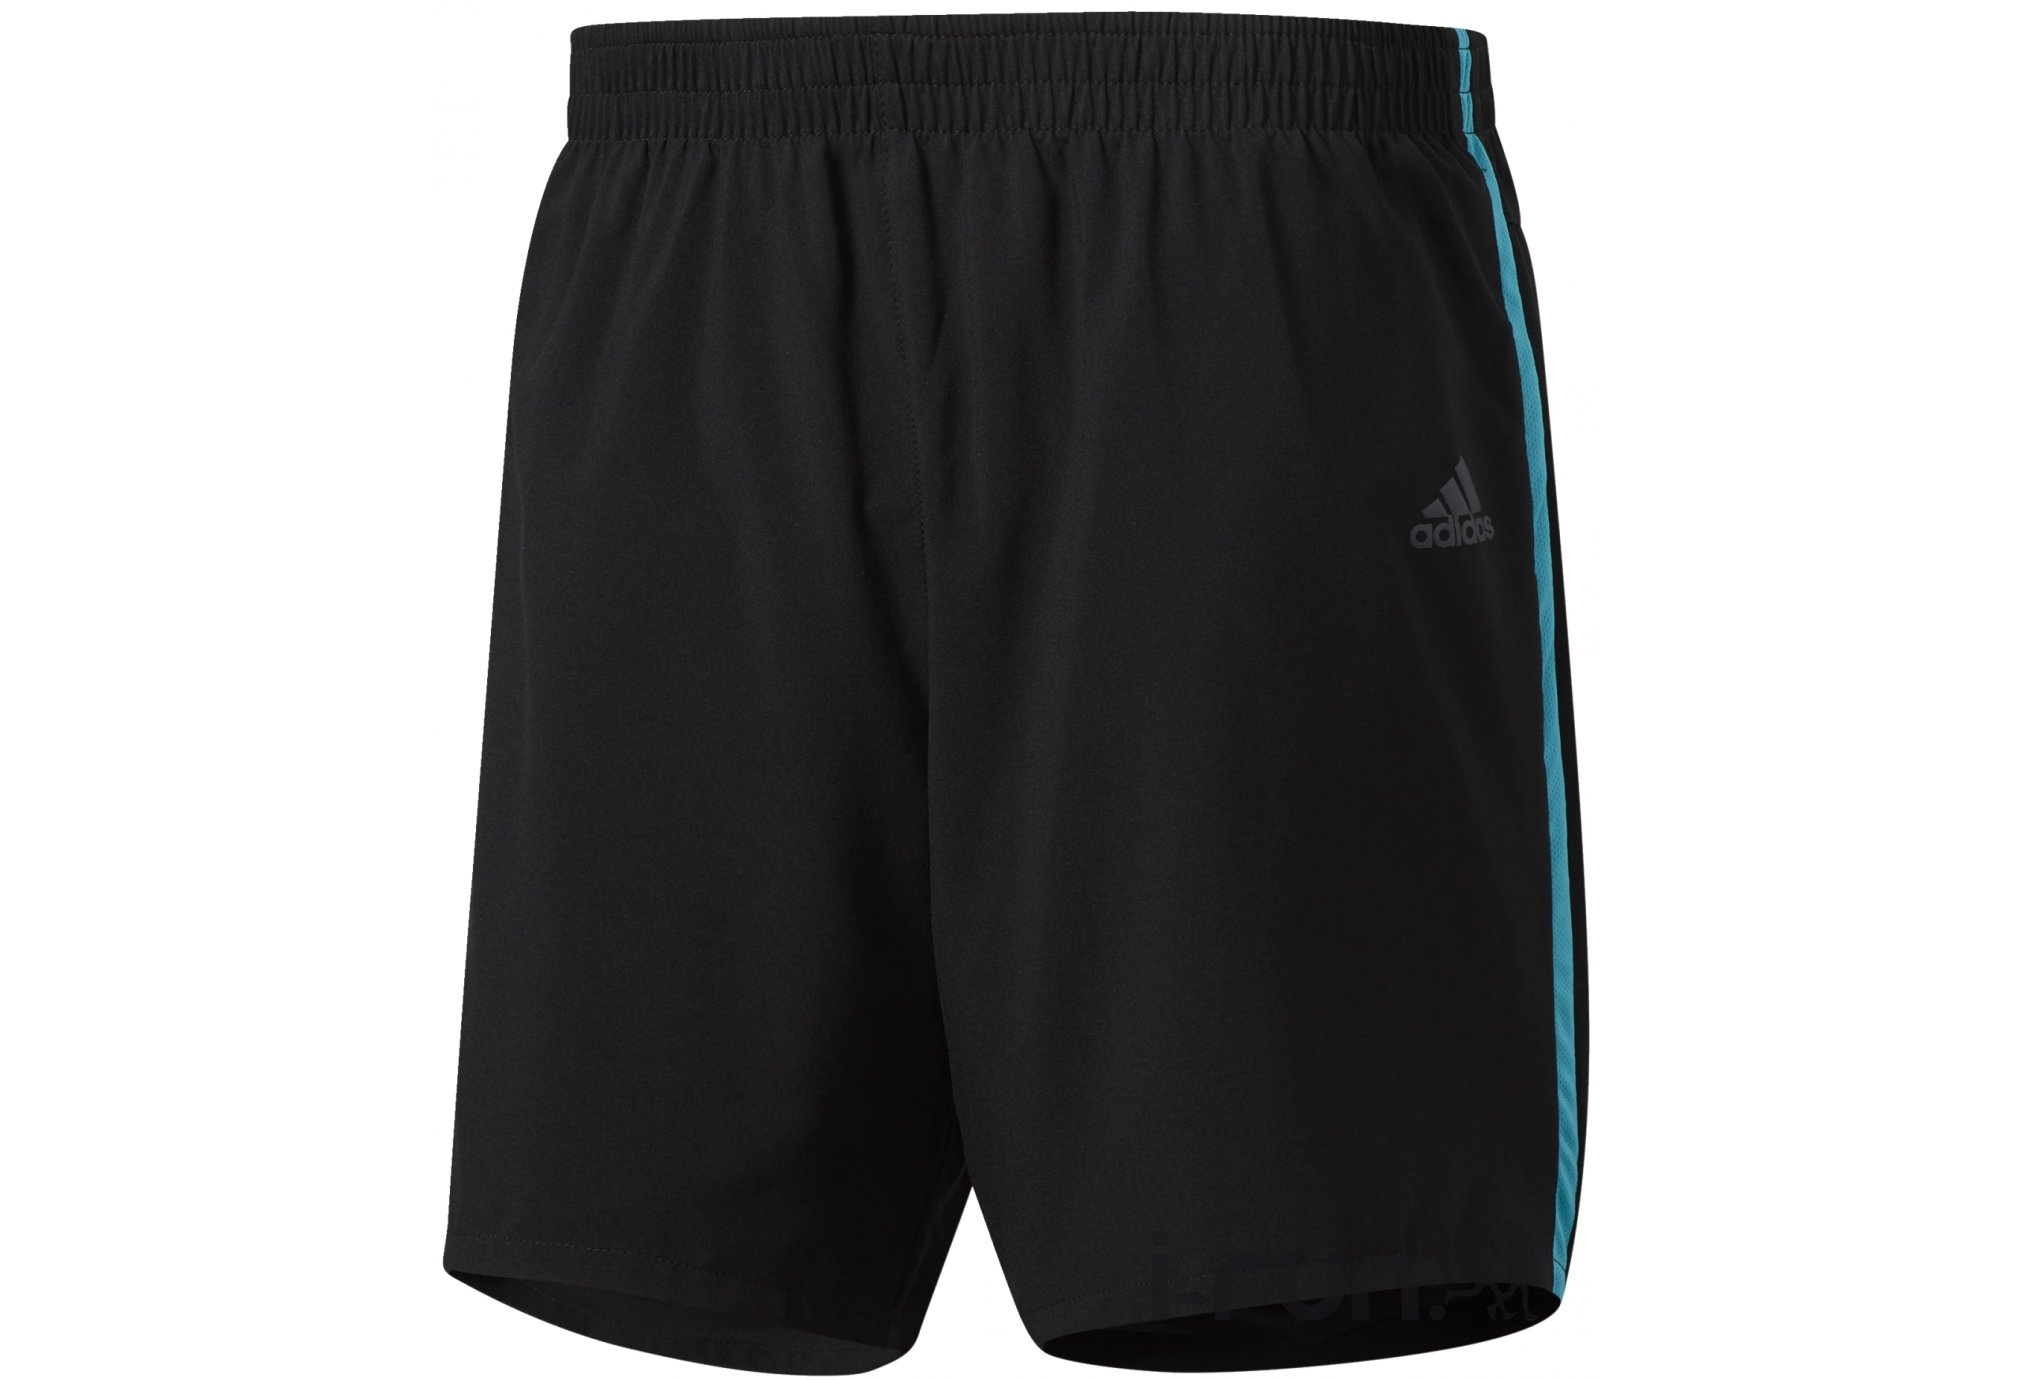 Adidas Rs 5 inch m vêtement running homme